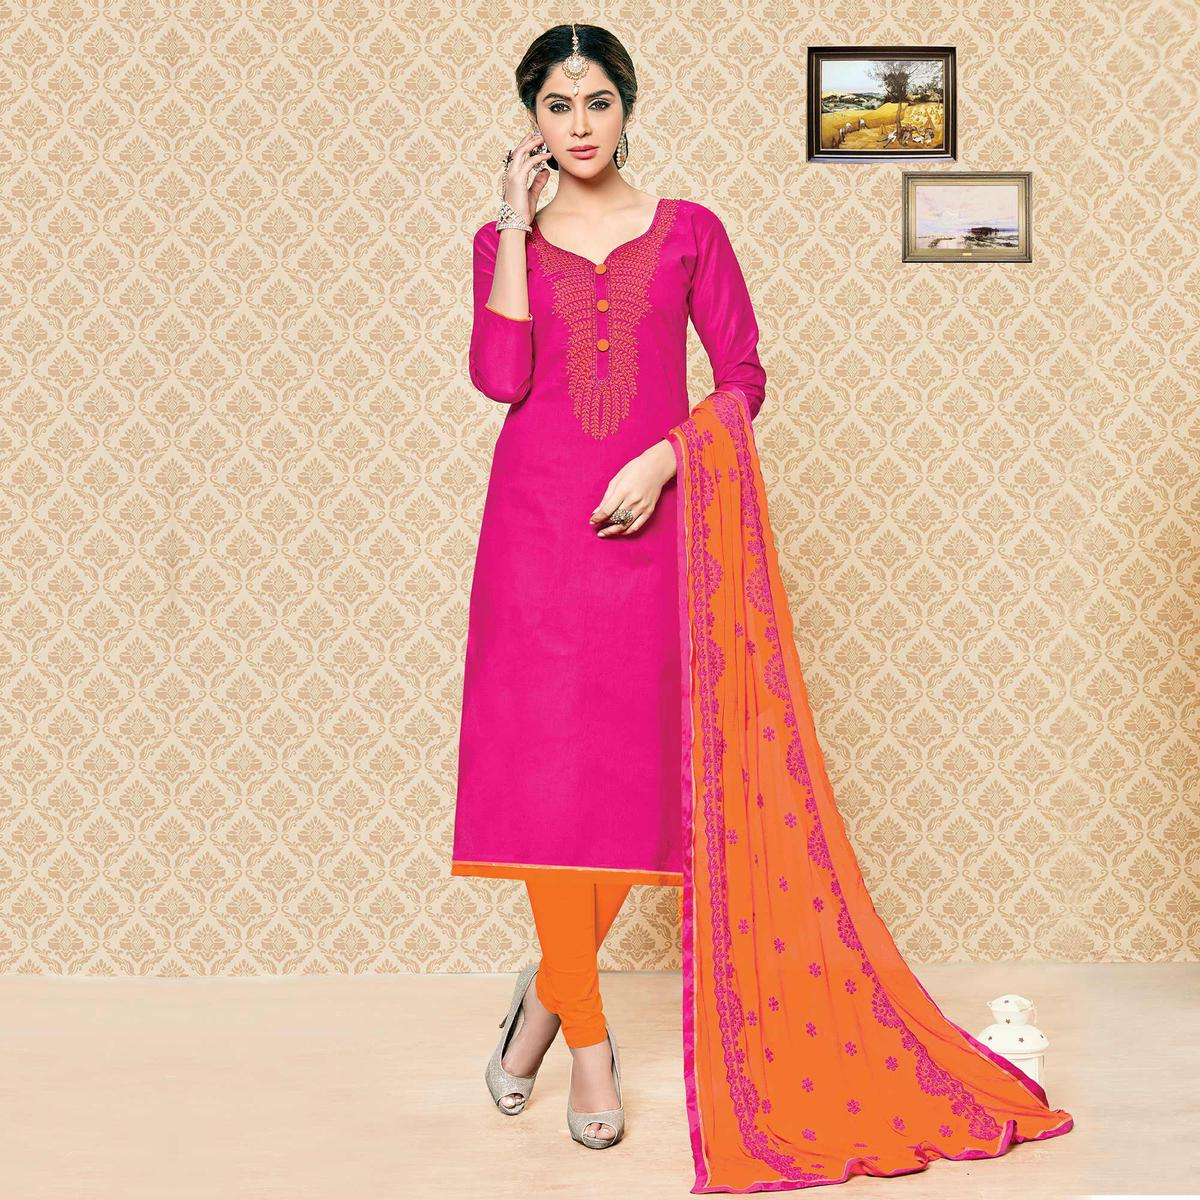 e52beaa12 Buy Pink - Orange Cotton Dress Material online India, Best Prices ...